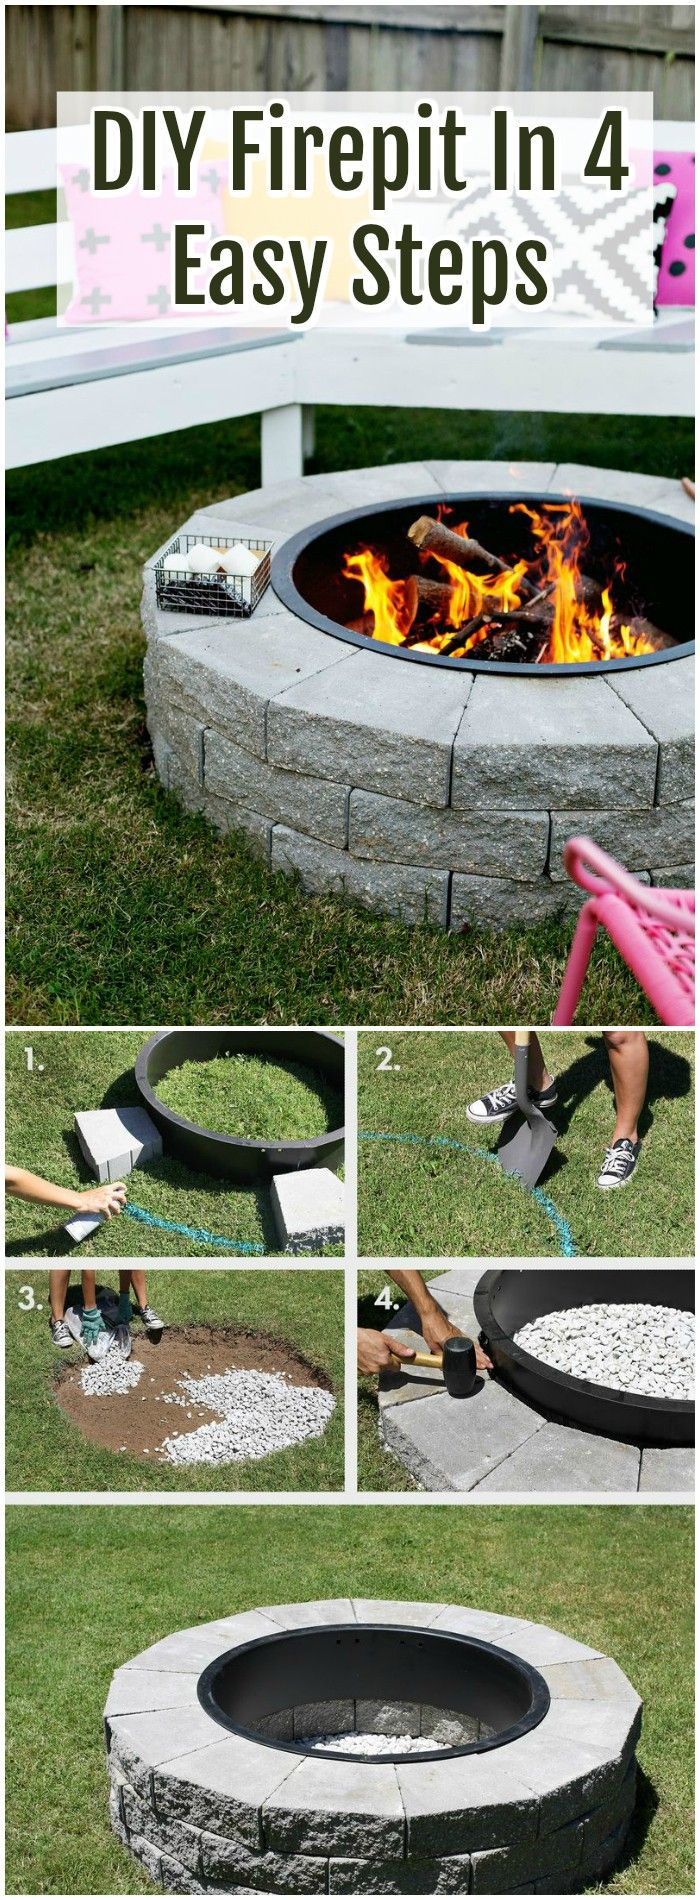 The Range Fire Pit Part - 28: The Range Of The DIY Fire Pit Ideas Is Very Wide Which Are Easy To Build  And Accentuated With Different Sources And Materials. So I Have Made A List  Of Easy ...